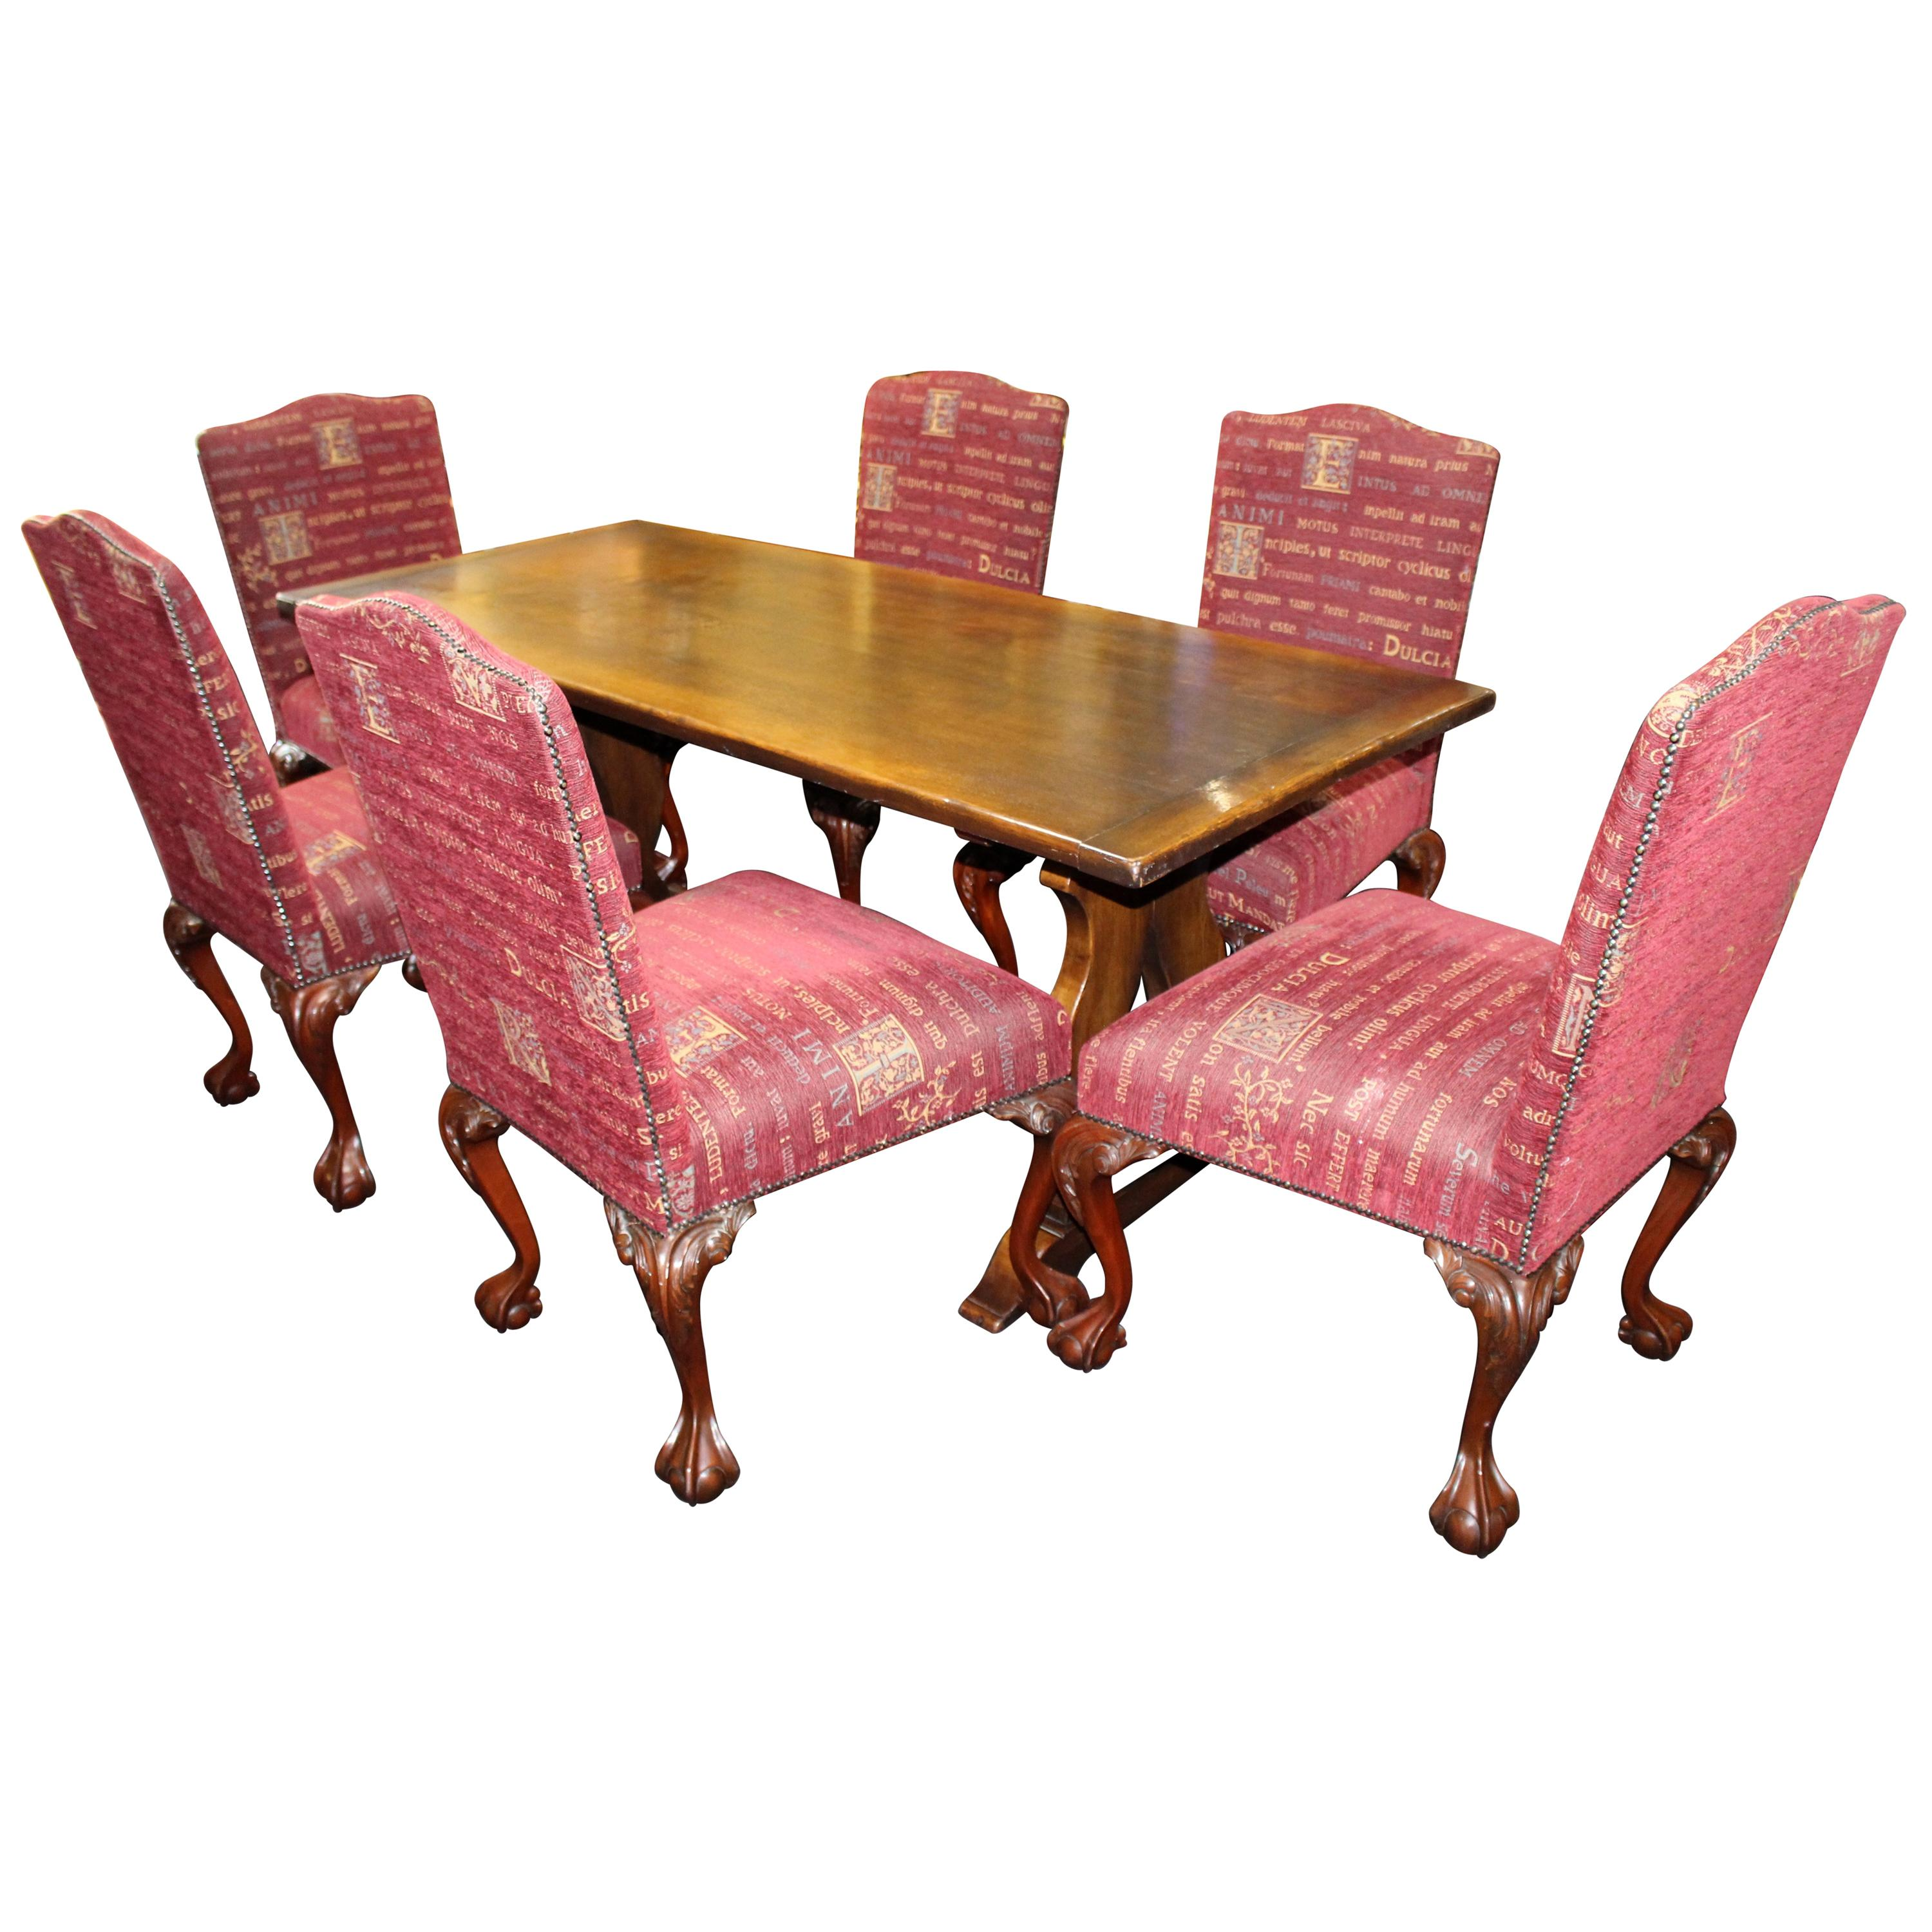 Antique Furniture Set 6 Edwardian Antique Solid Carved Mahogany Upholstered Dining Kitchen Chairs Quality First